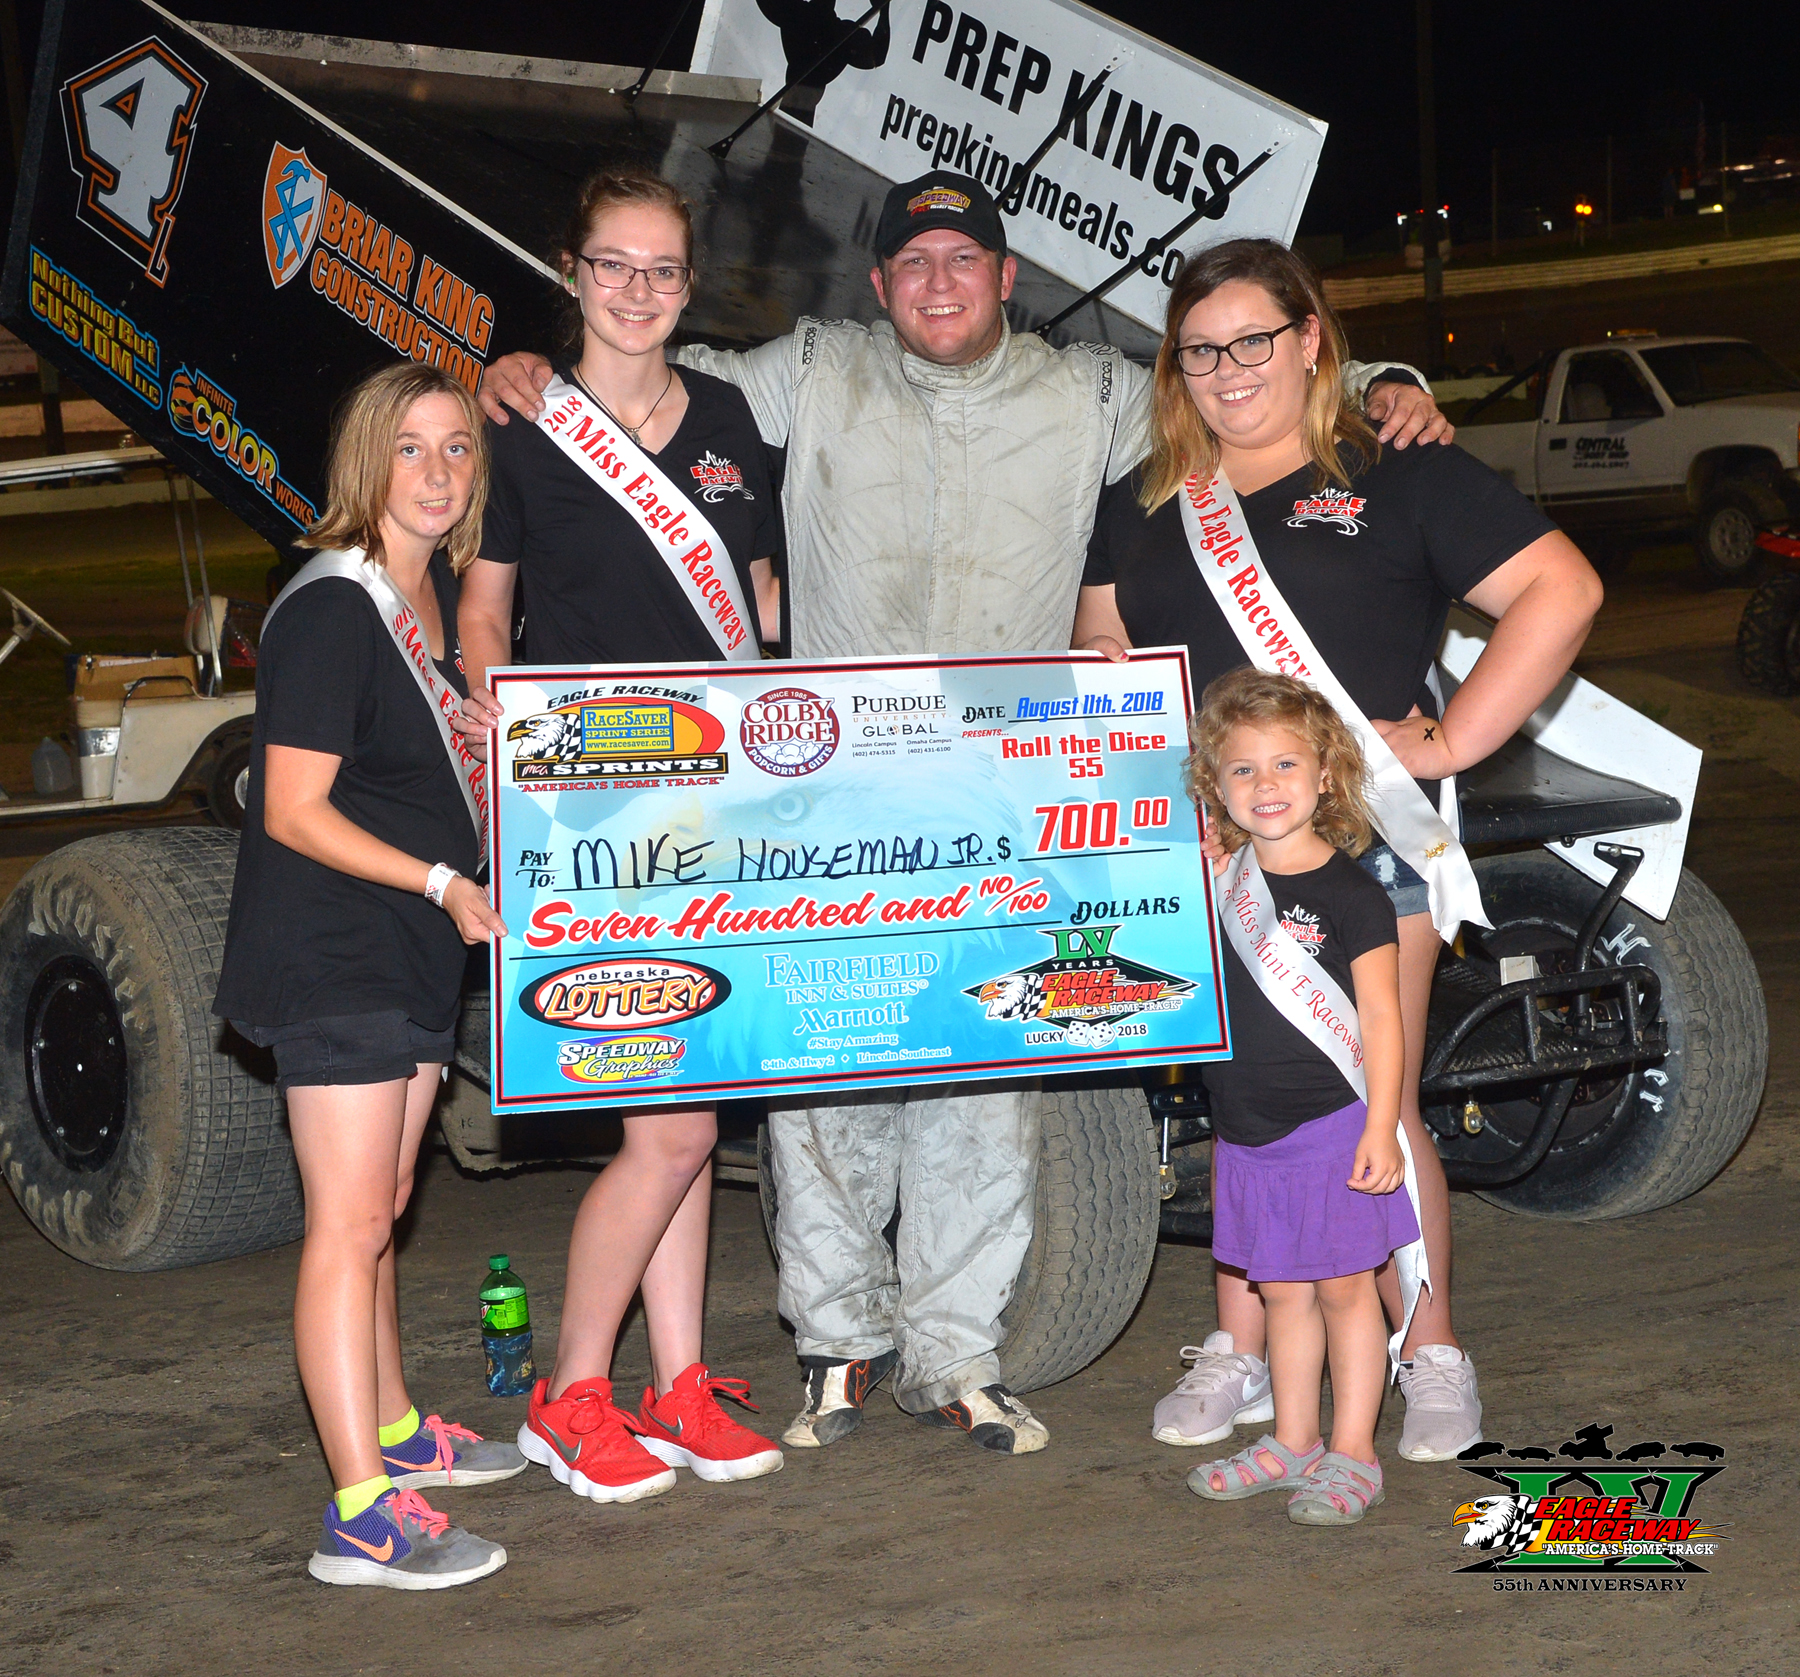 Mike Houseman Jr. is the 12th different RaceSaver Sprint winner at Eagle Raceway in 2018!